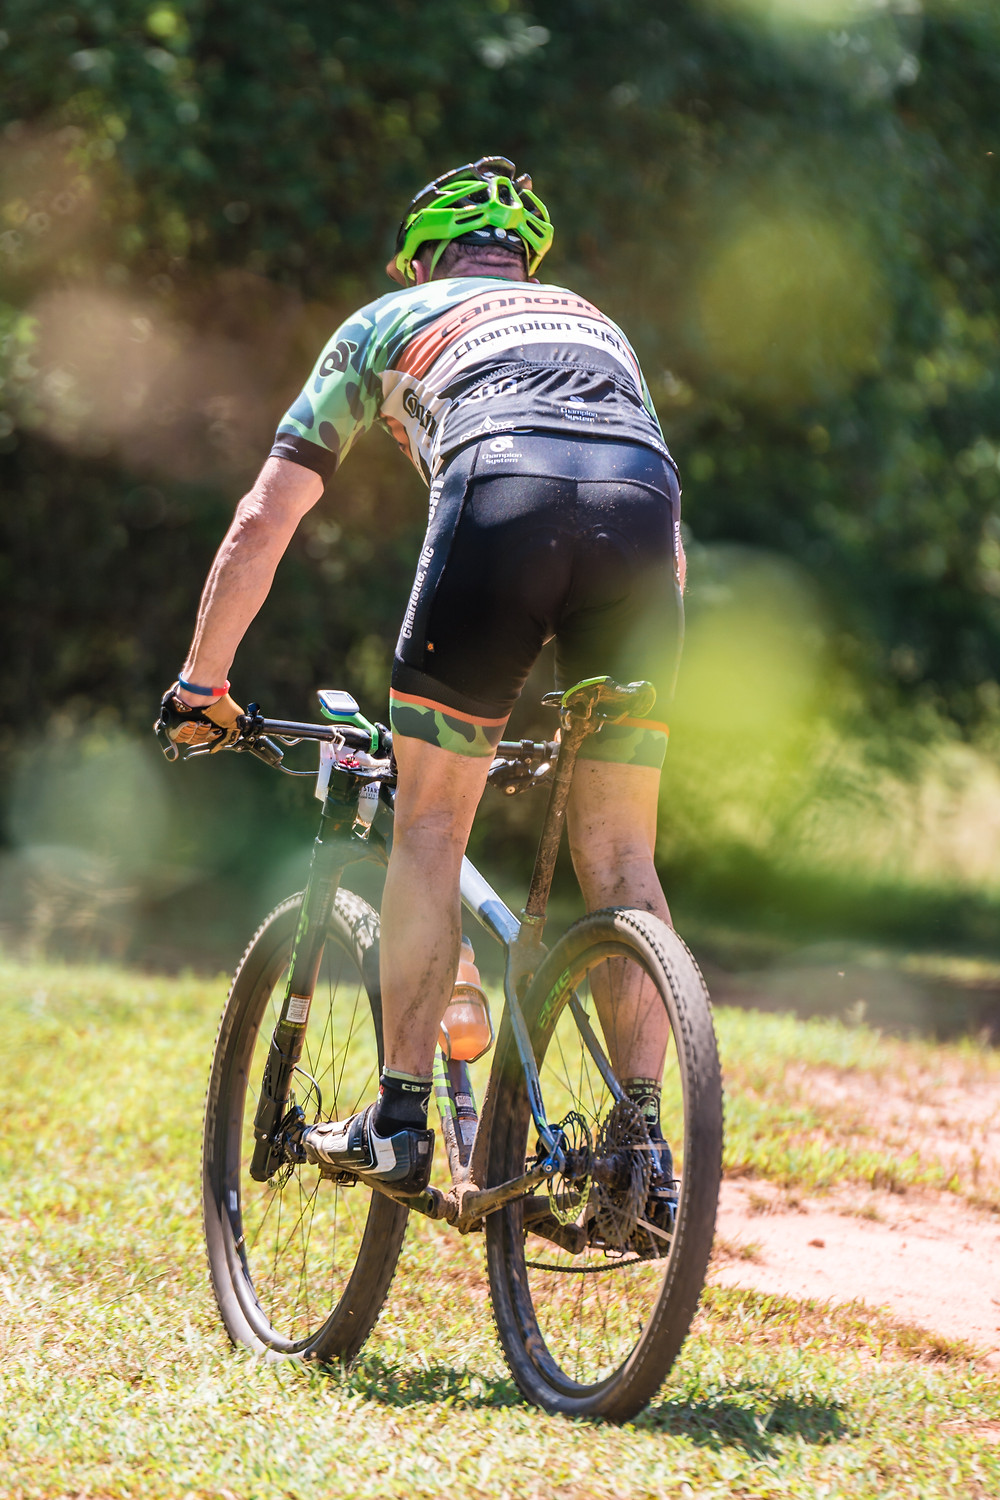 Tubeless tires for mountain bikers are better performance